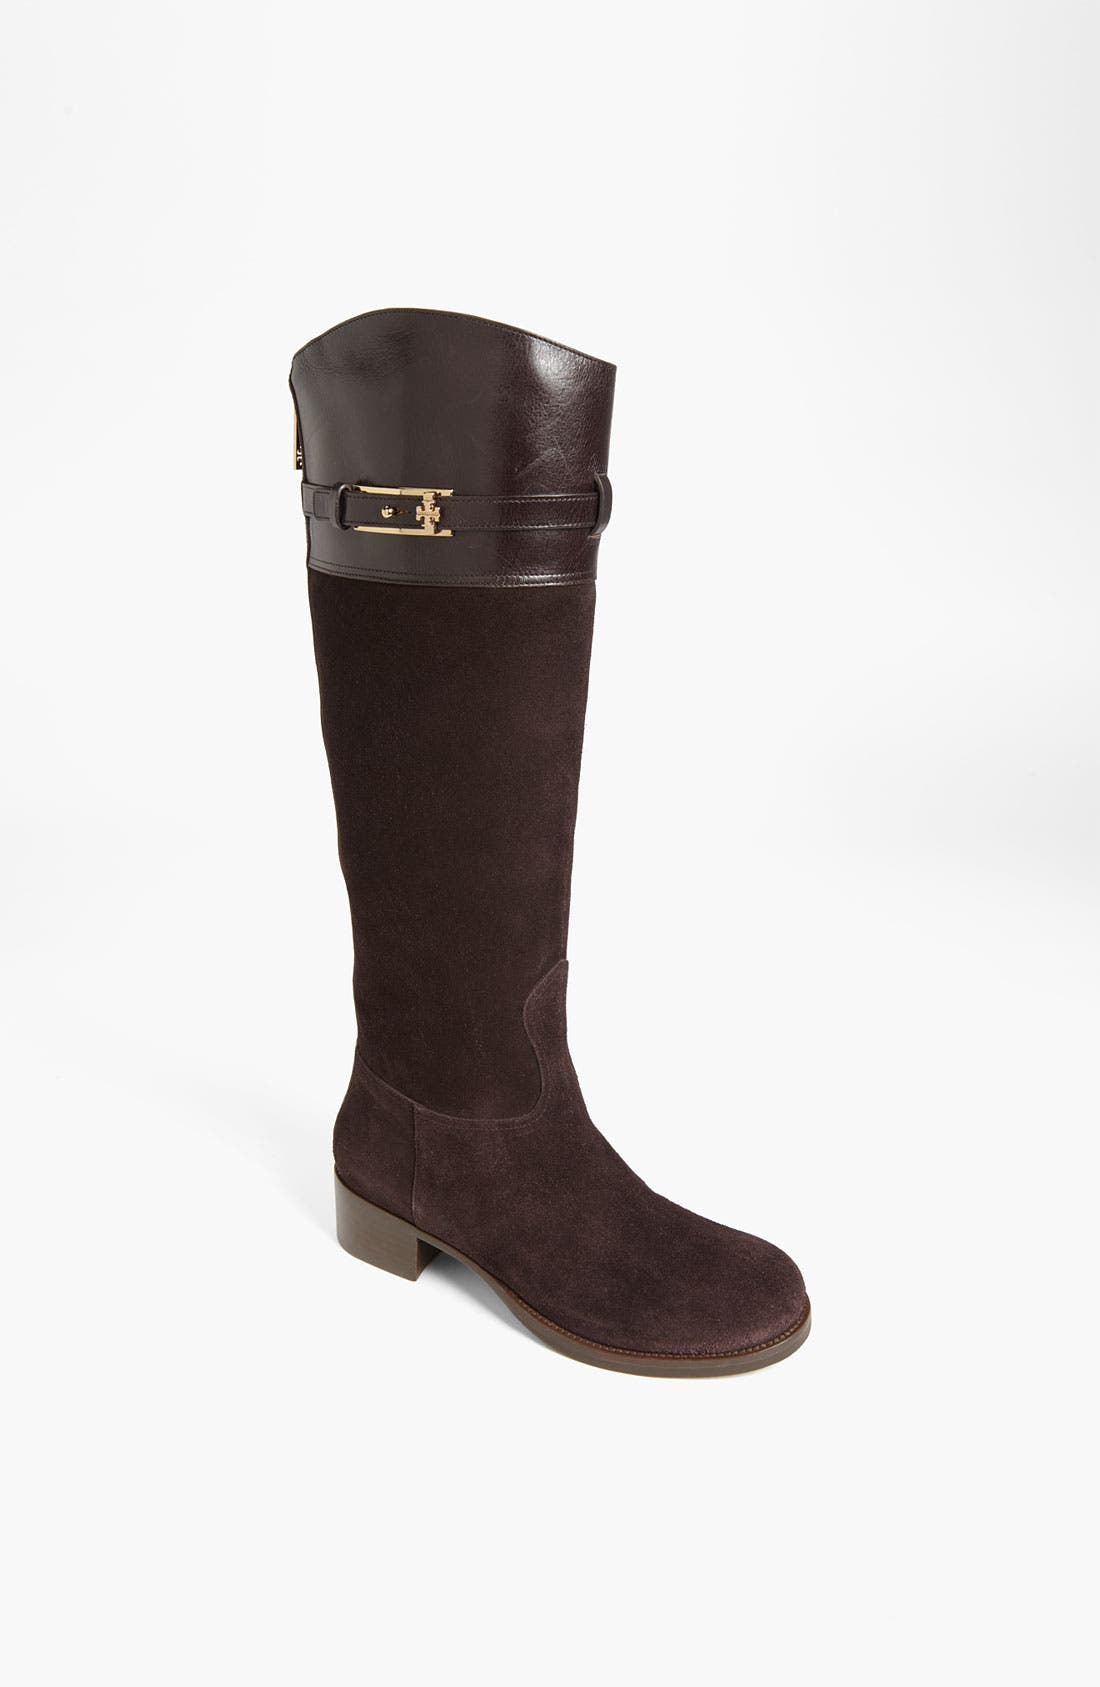 Alternate Image 1 Selected - Tory Burch 'Jenna' Riding Boot (Nordstrom Exclusive)